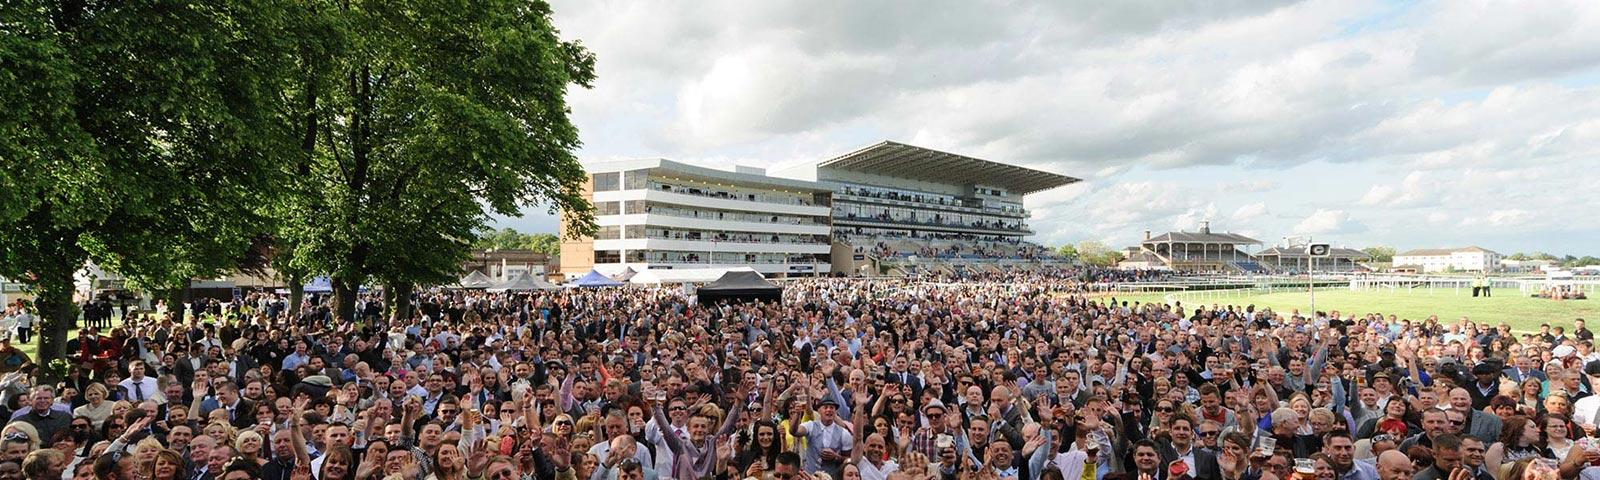 A large crowd at Doncaster Racecourse with the Grandstand and Hilton Garden Inn Hotel visible in the background.